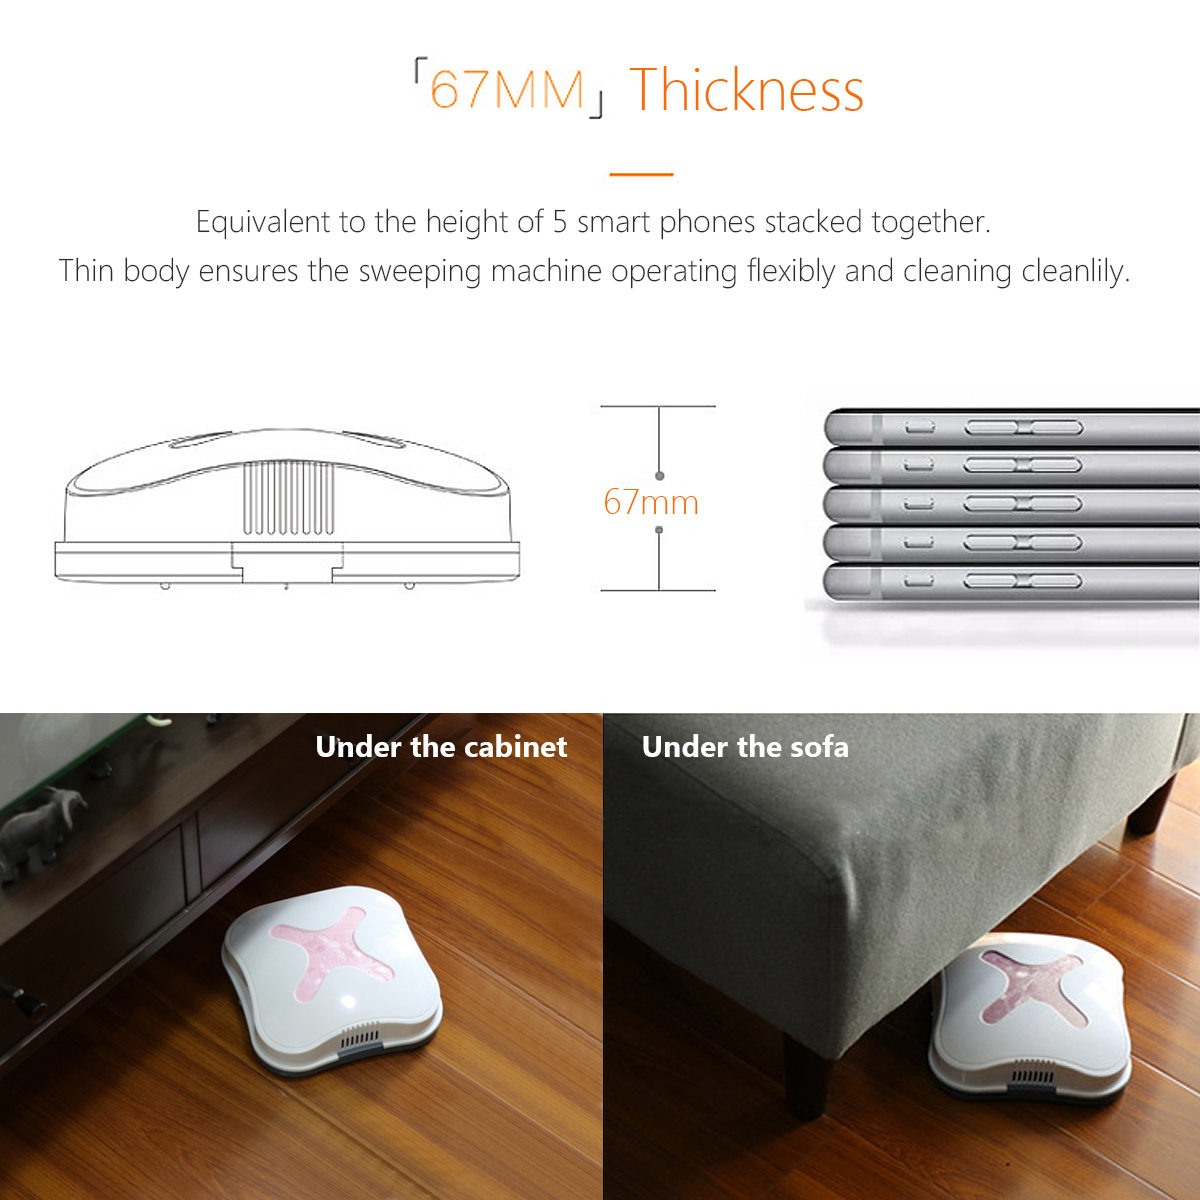 4W 2 Mode Automatic Smart Robot Vacuum Cleaner USB Rechargeable Dust Sweep Strong Suction